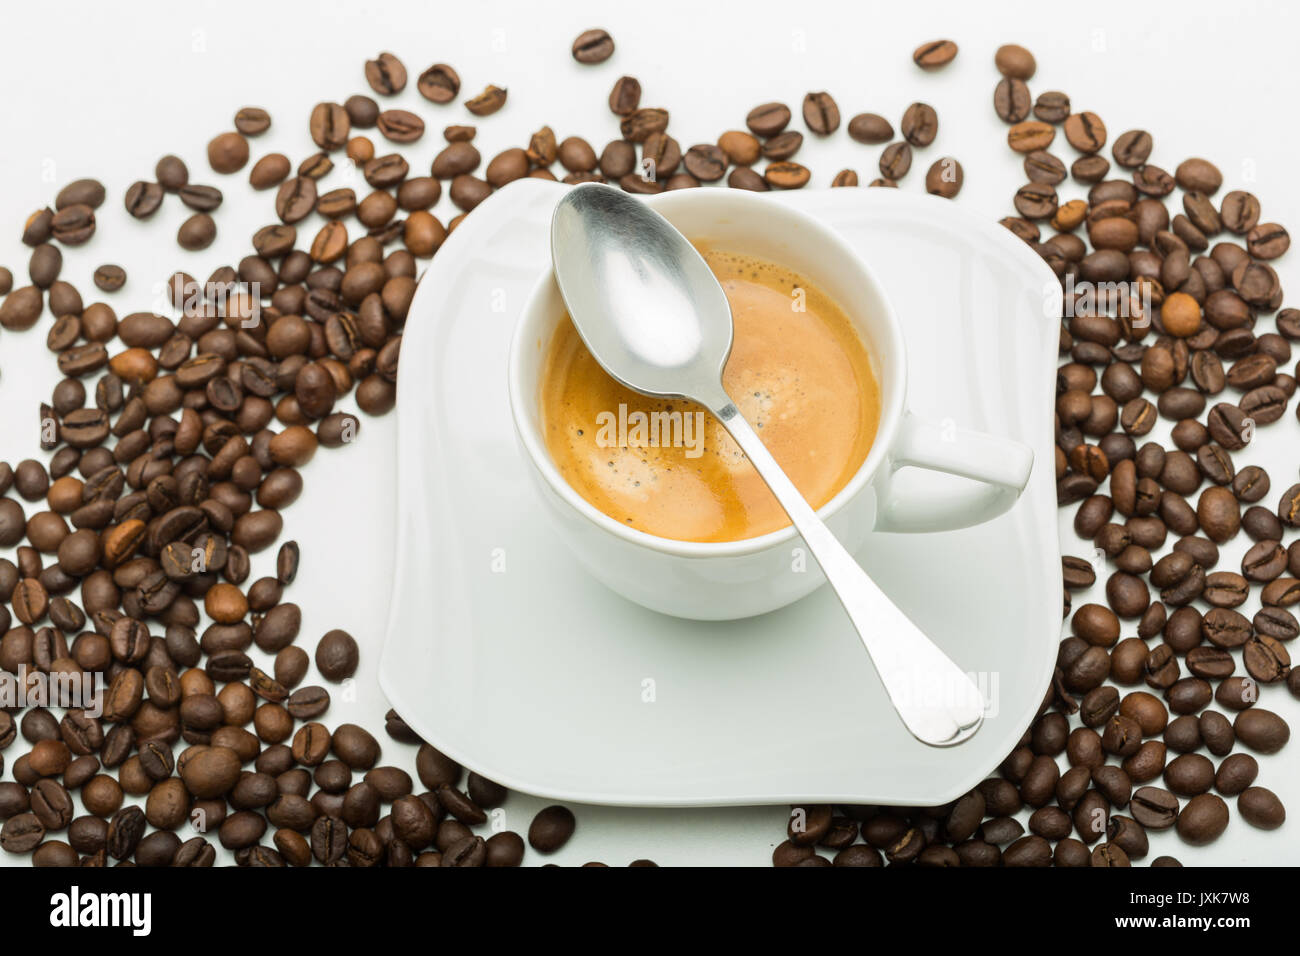 A white cup of coffee and a white saucer seen from the top with coffee beans. - Stock Image